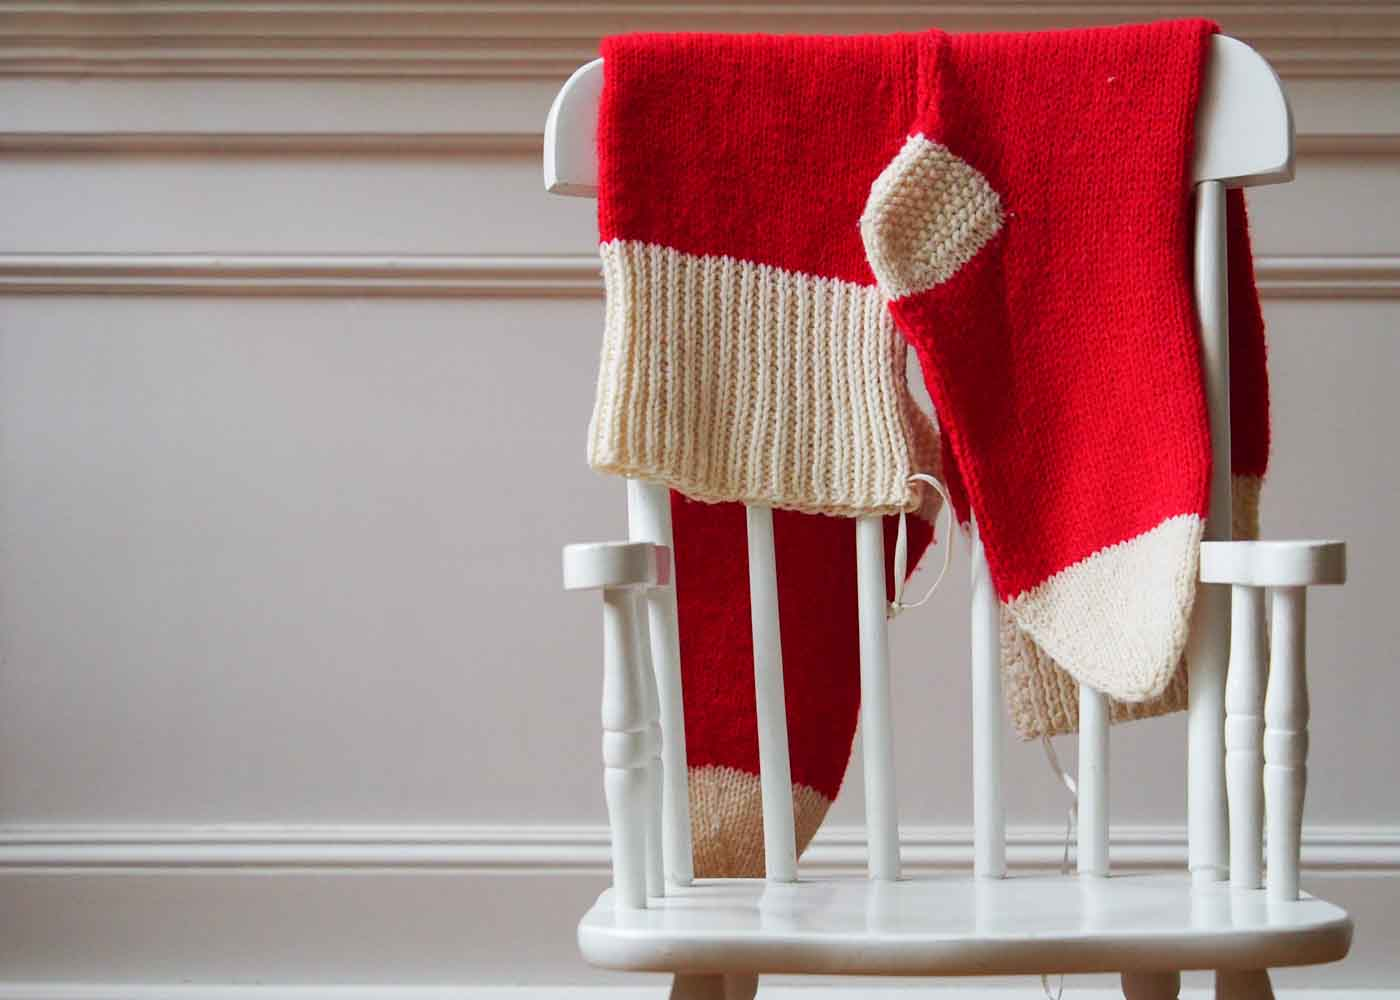 Know how to knit? Think of all the great gifts you can make - from booties, to Christmas stockings.